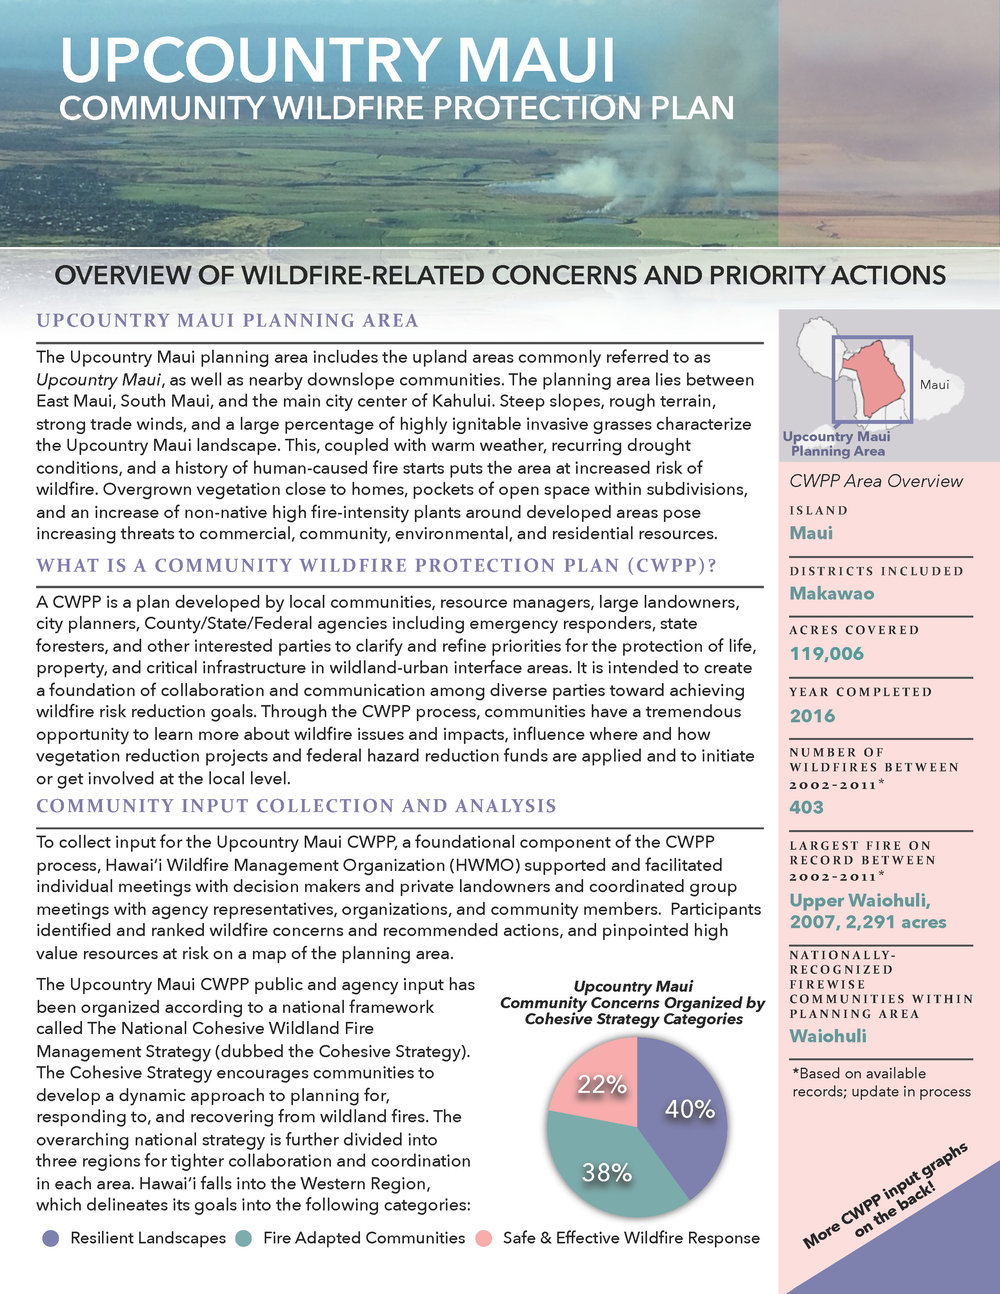 2018_4_18_CWPP Concerns and Priorities Overview_Upcountry Maui_FINAL_HWMO_Page_1.jpg